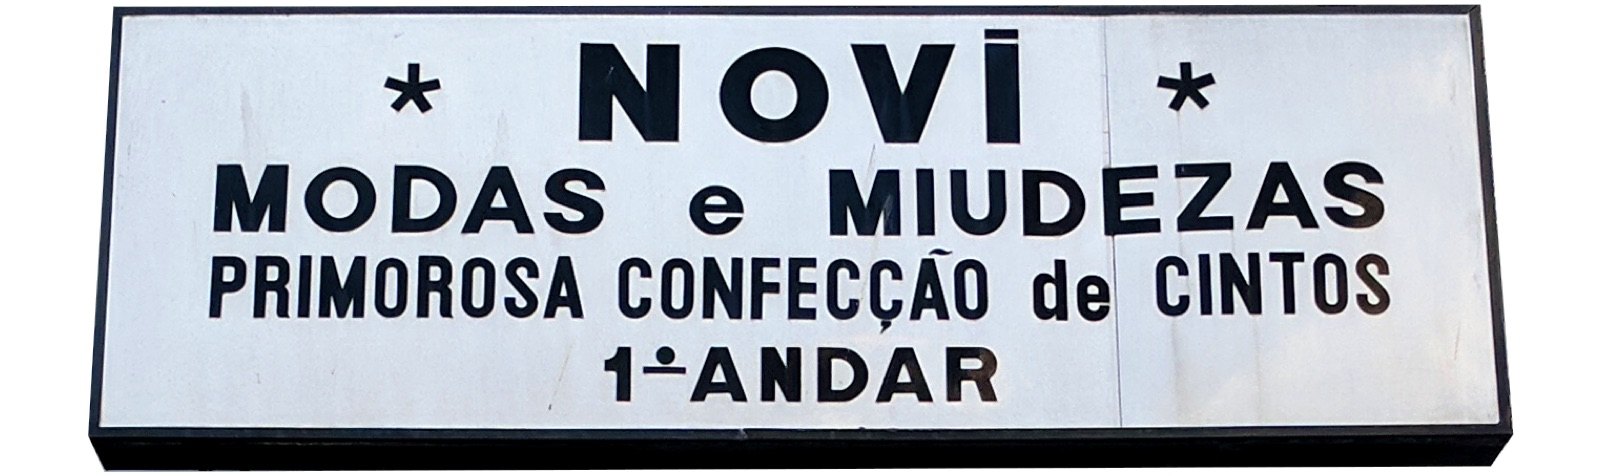 sign in Portuguese with miscellaneous letters